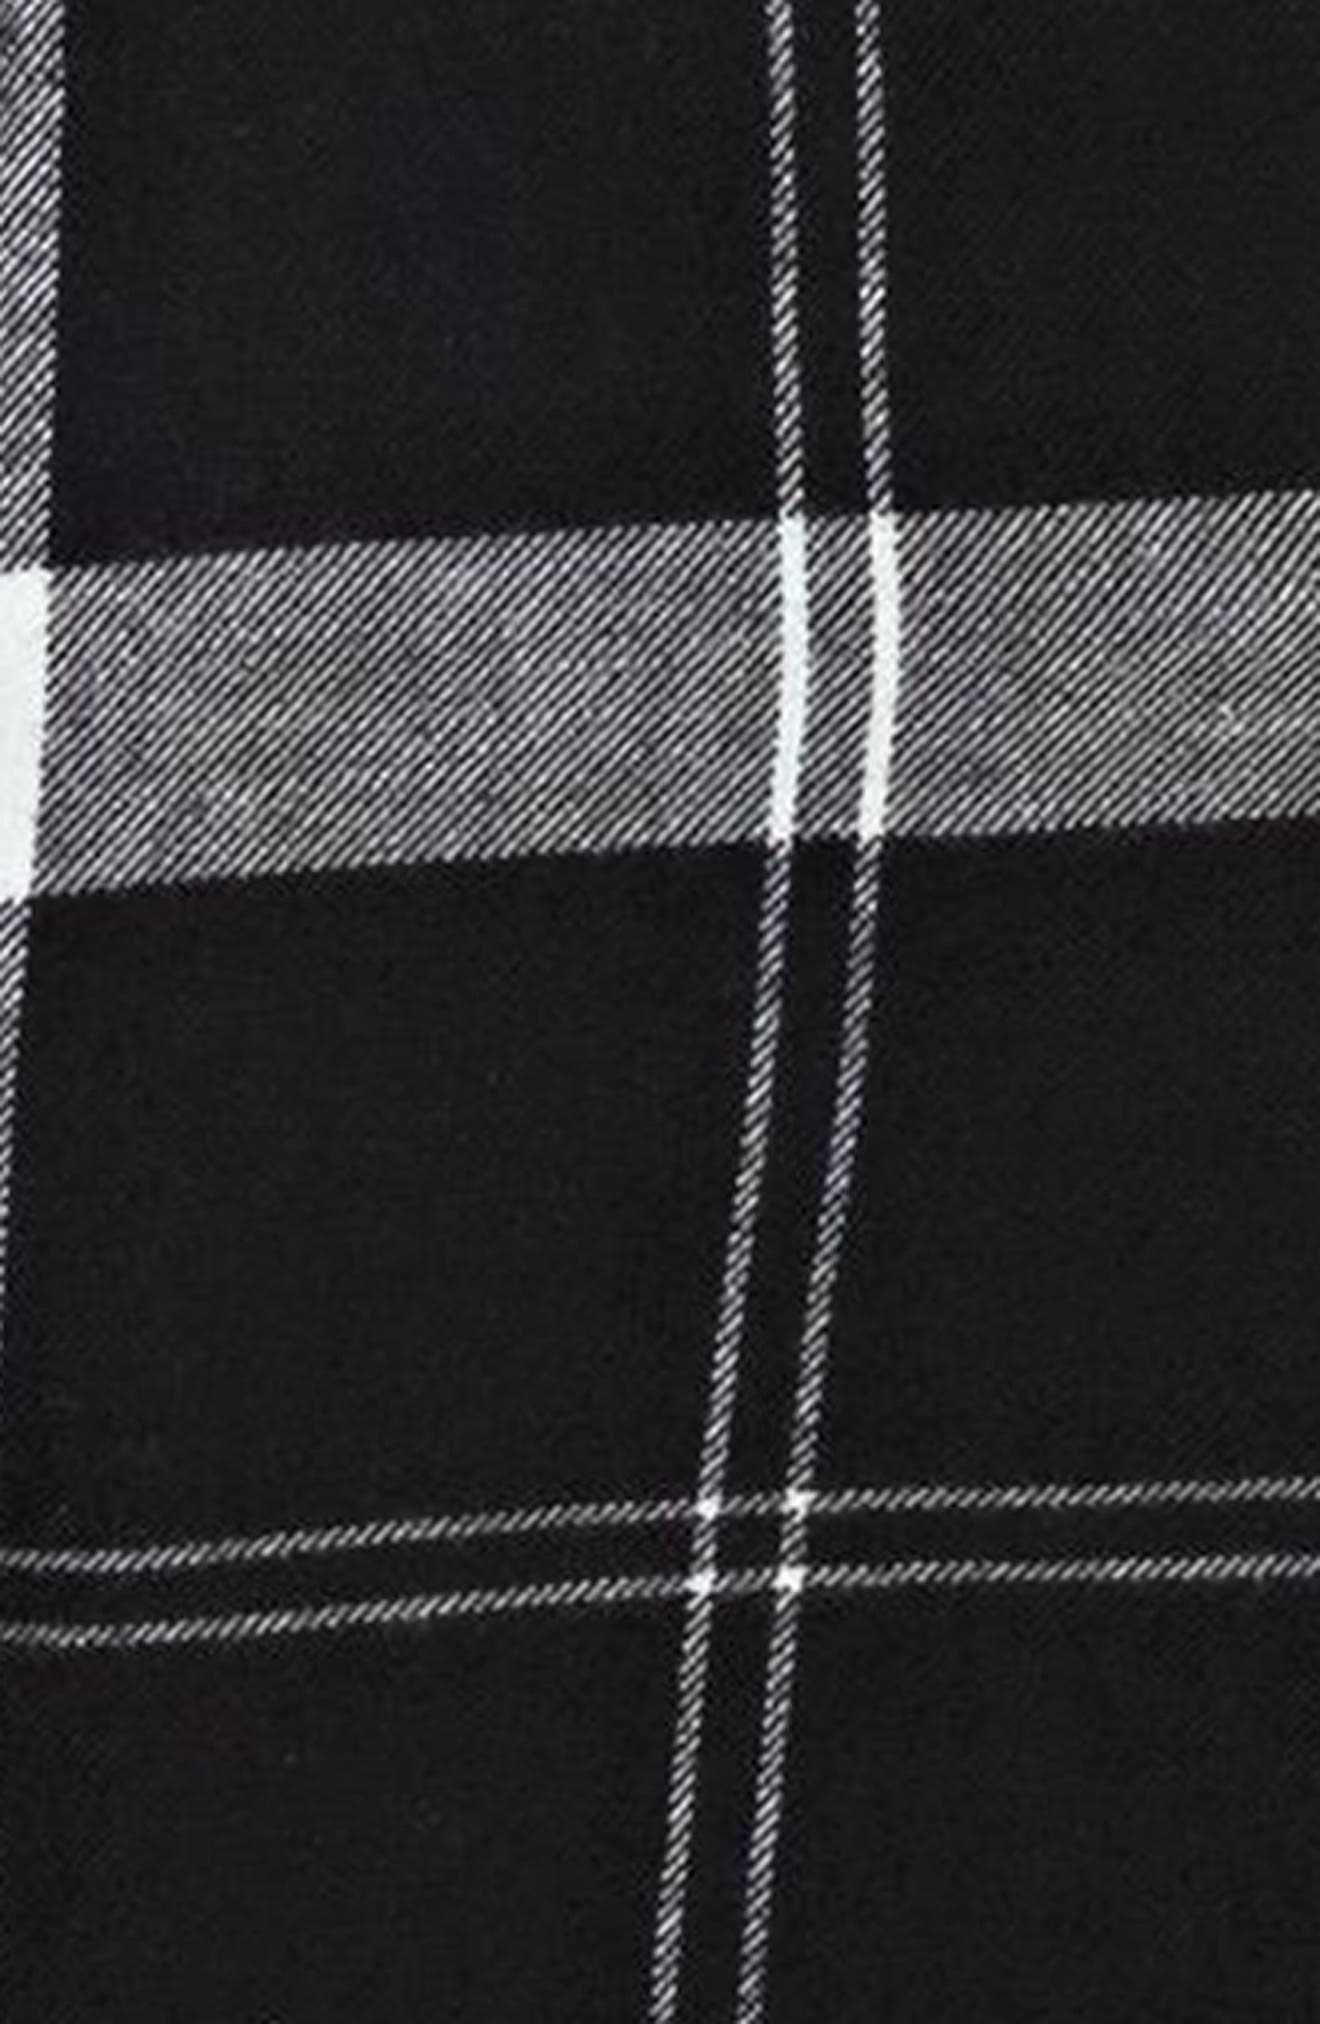 Heavy Feelings Plaid Cotton Shirt,                             Alternate thumbnail 4, color,                             Checked Plaid Combo Anthracite